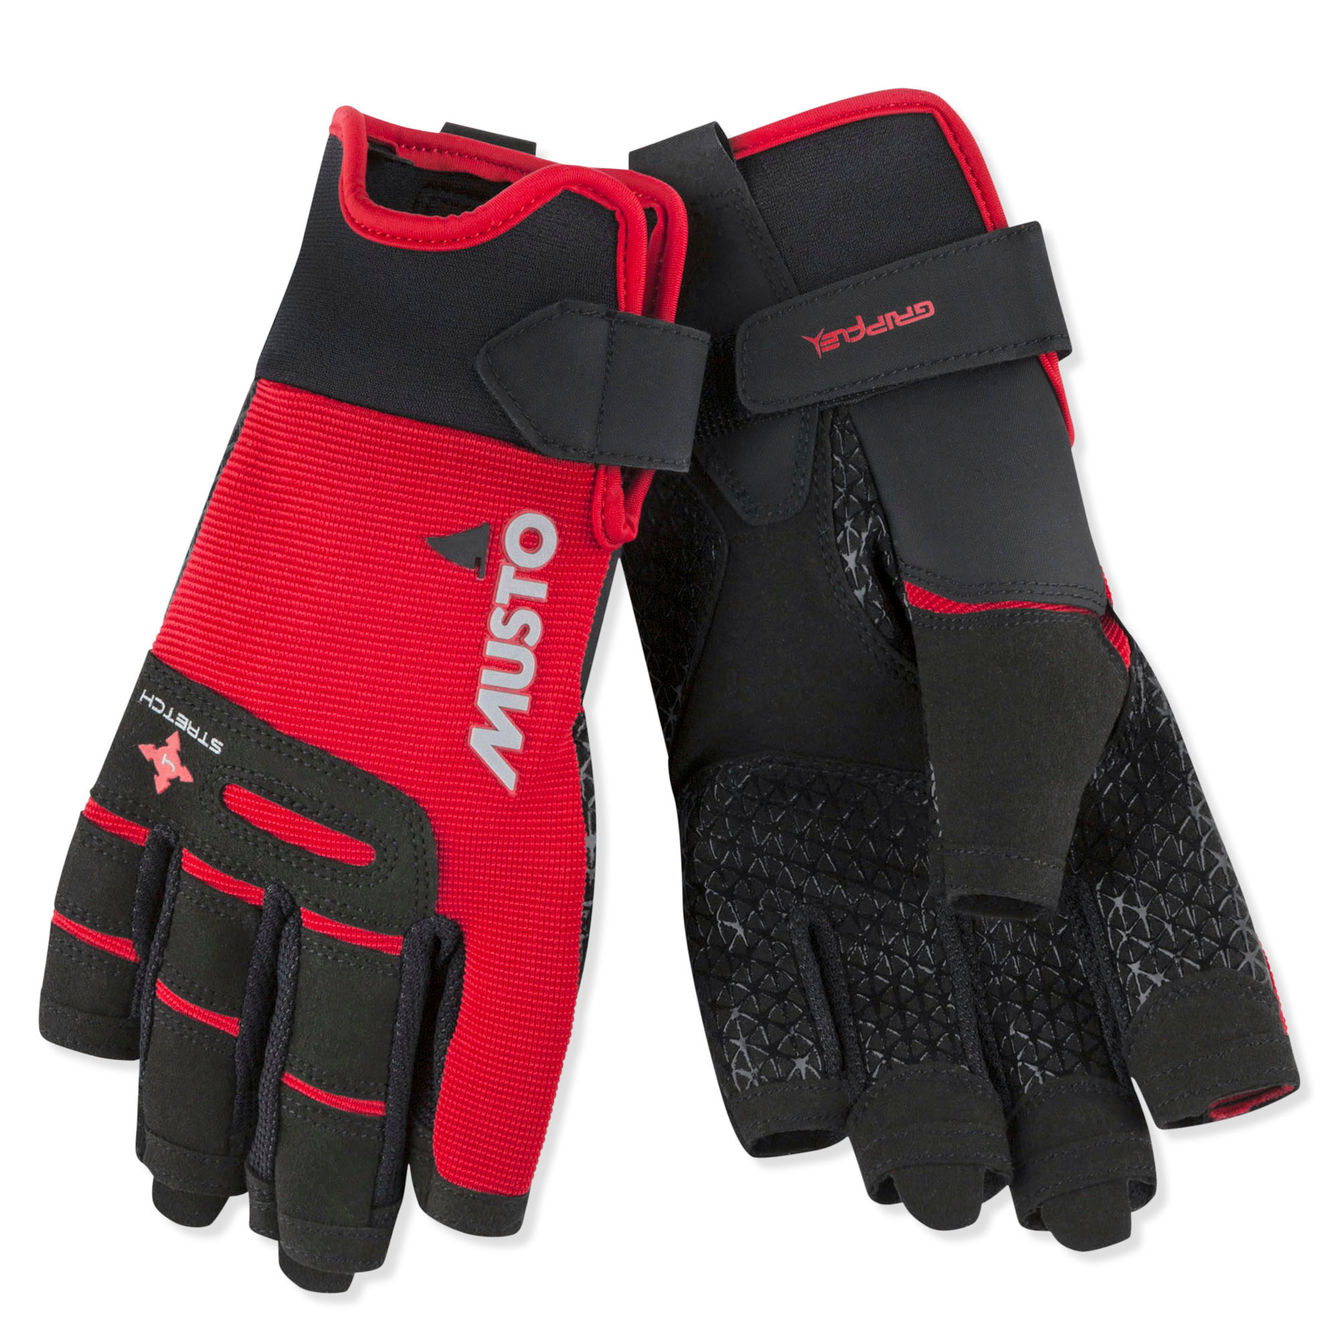 PERFORMANCE SF GLOVE